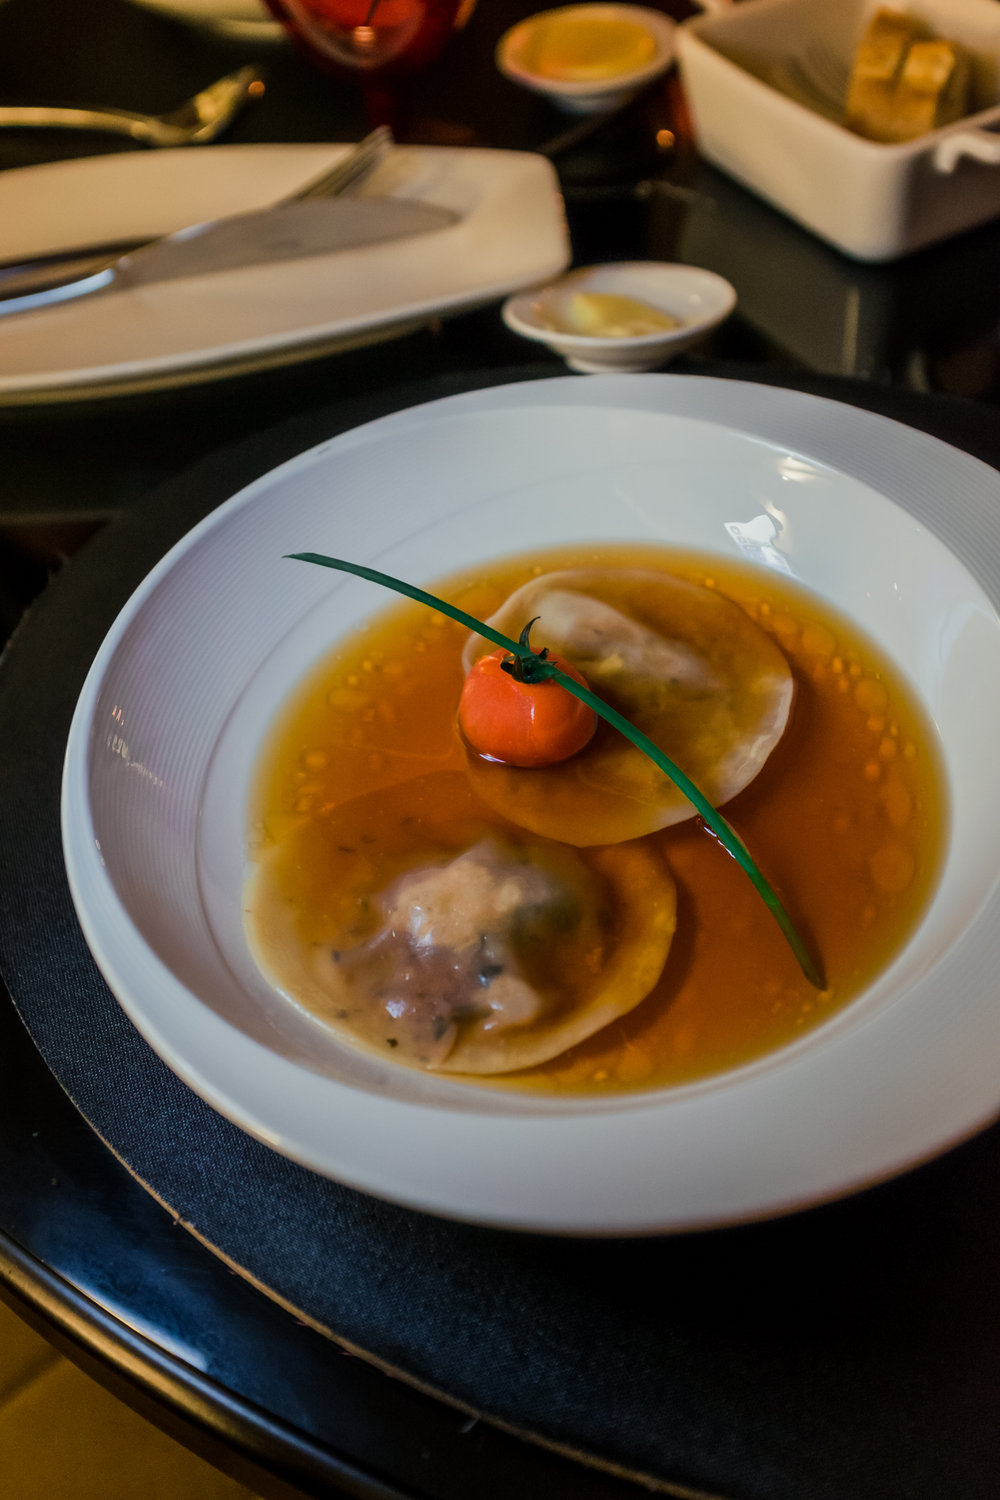 Tomato Consomme with Basil Ravioli